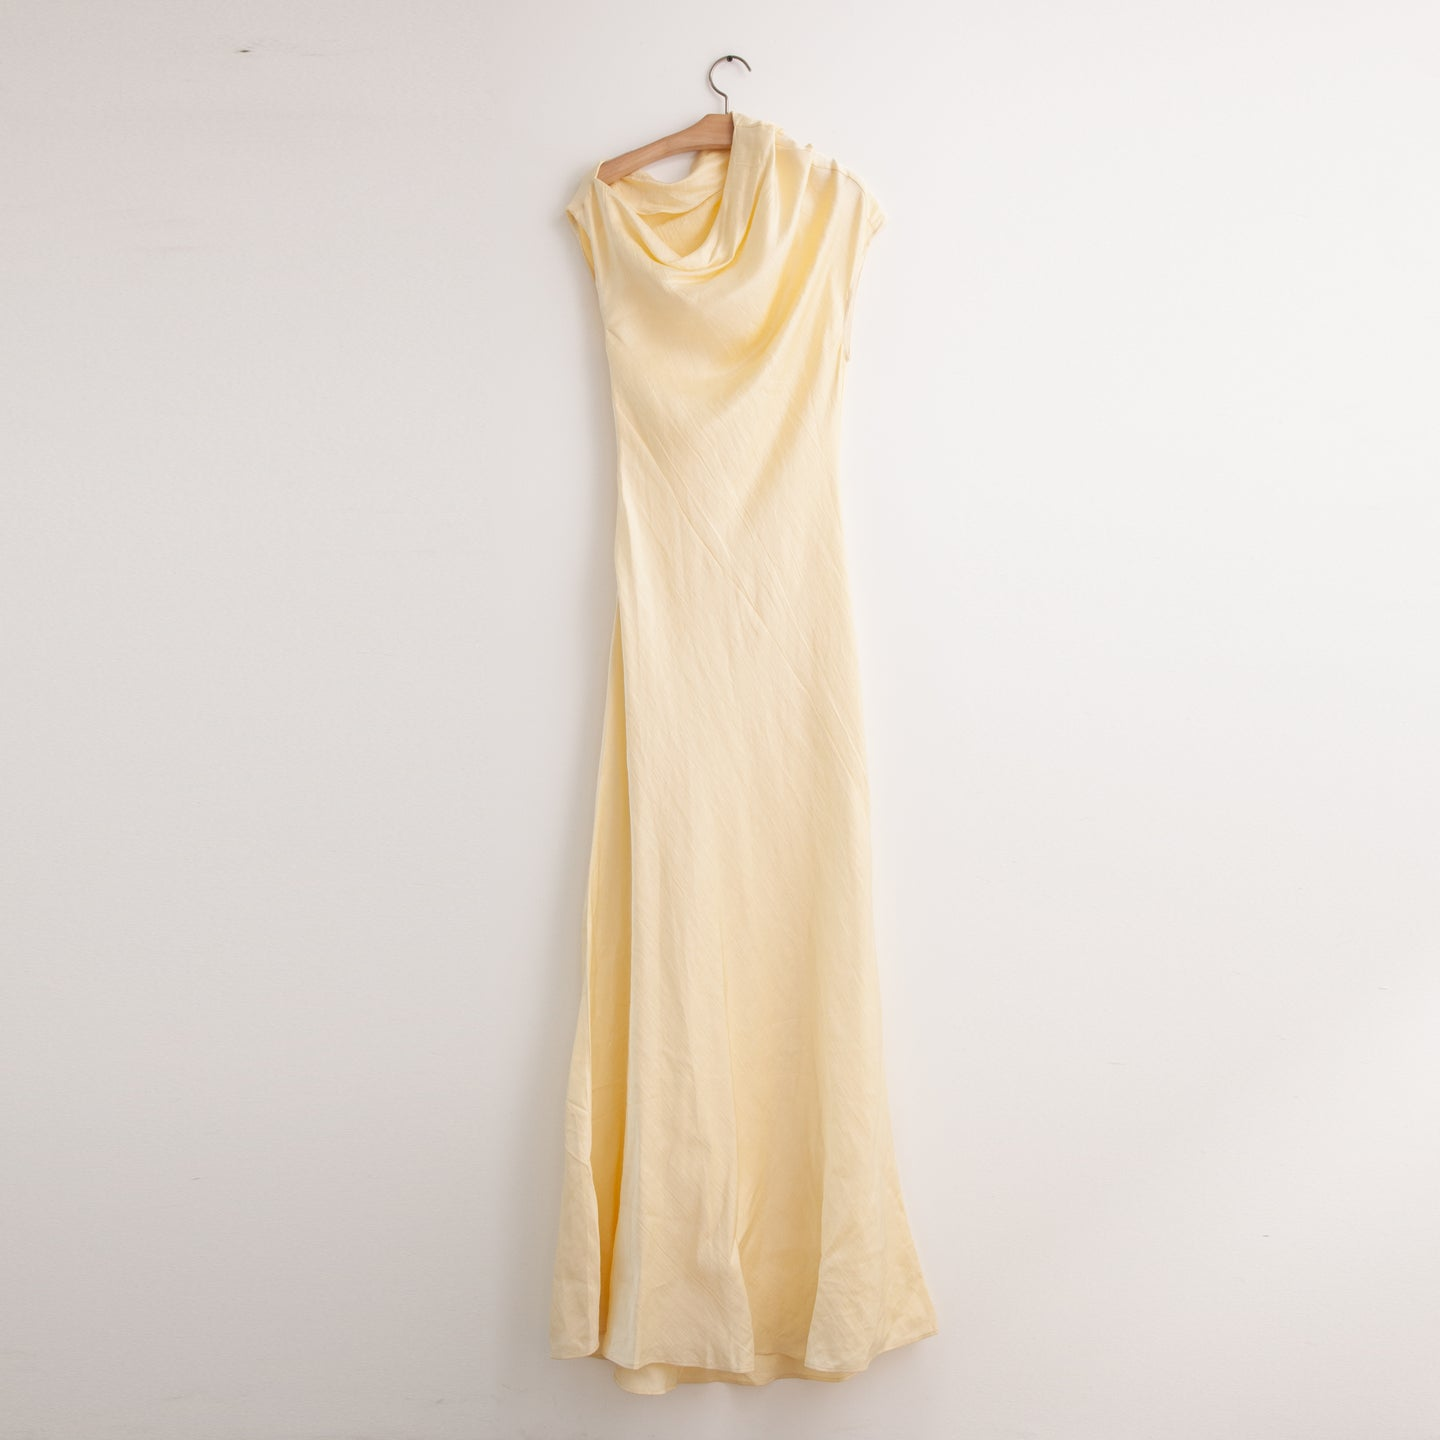 CO - Bias cut cowl neck gown in light yellow silk